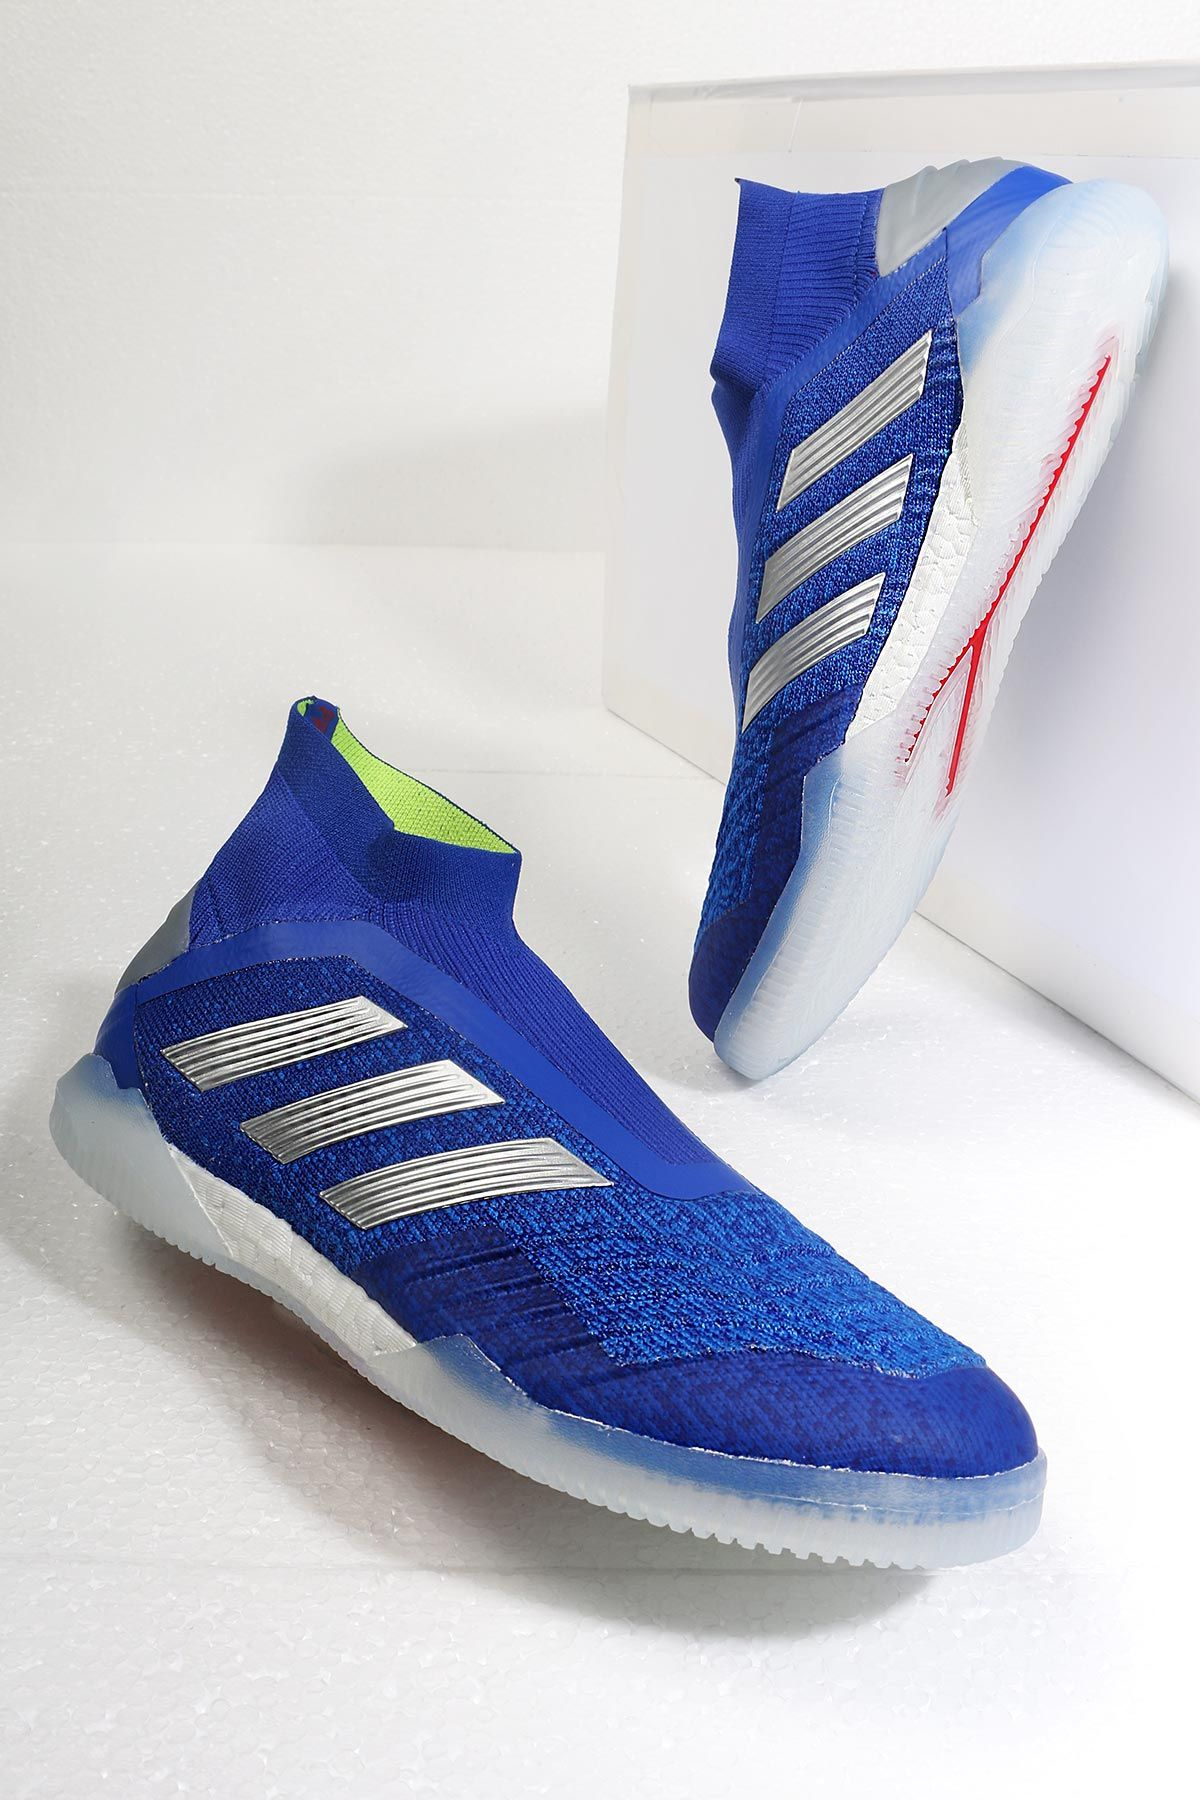 adidas Predator Tango 19 + IN | Football boots | Zapatillas